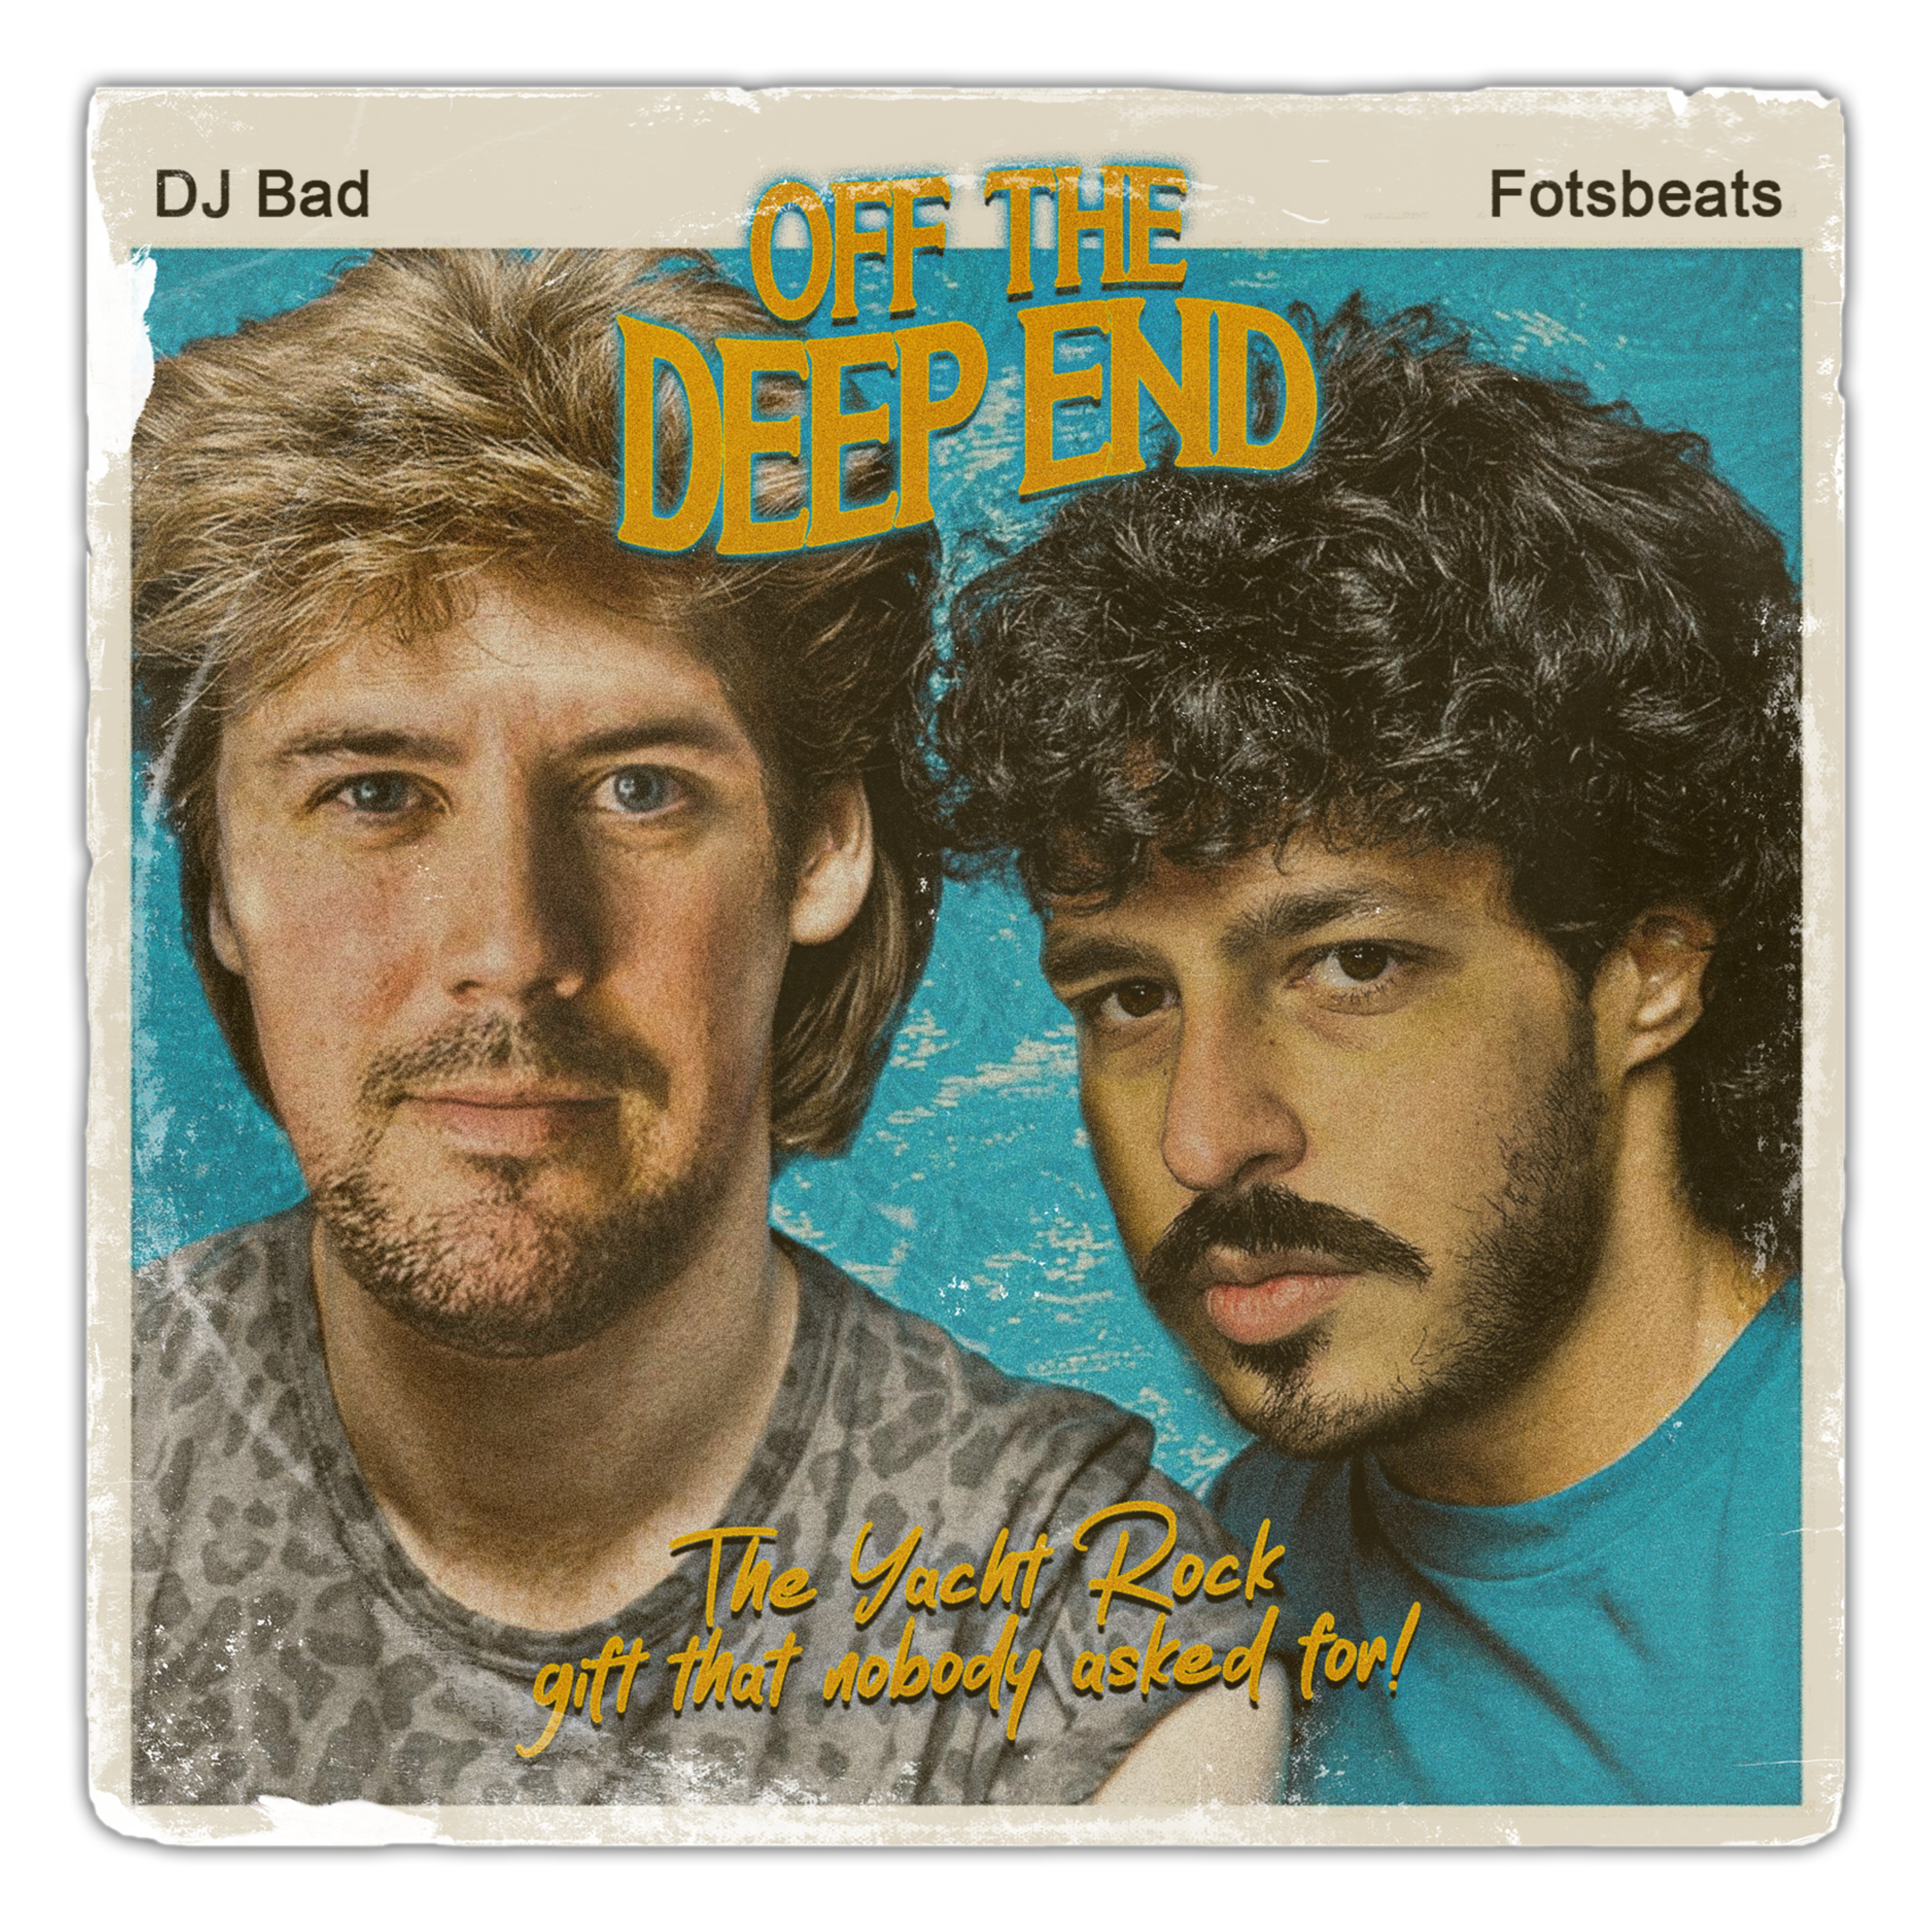 Off the Deep End: The Yacht Rock gift that nobody asked for!